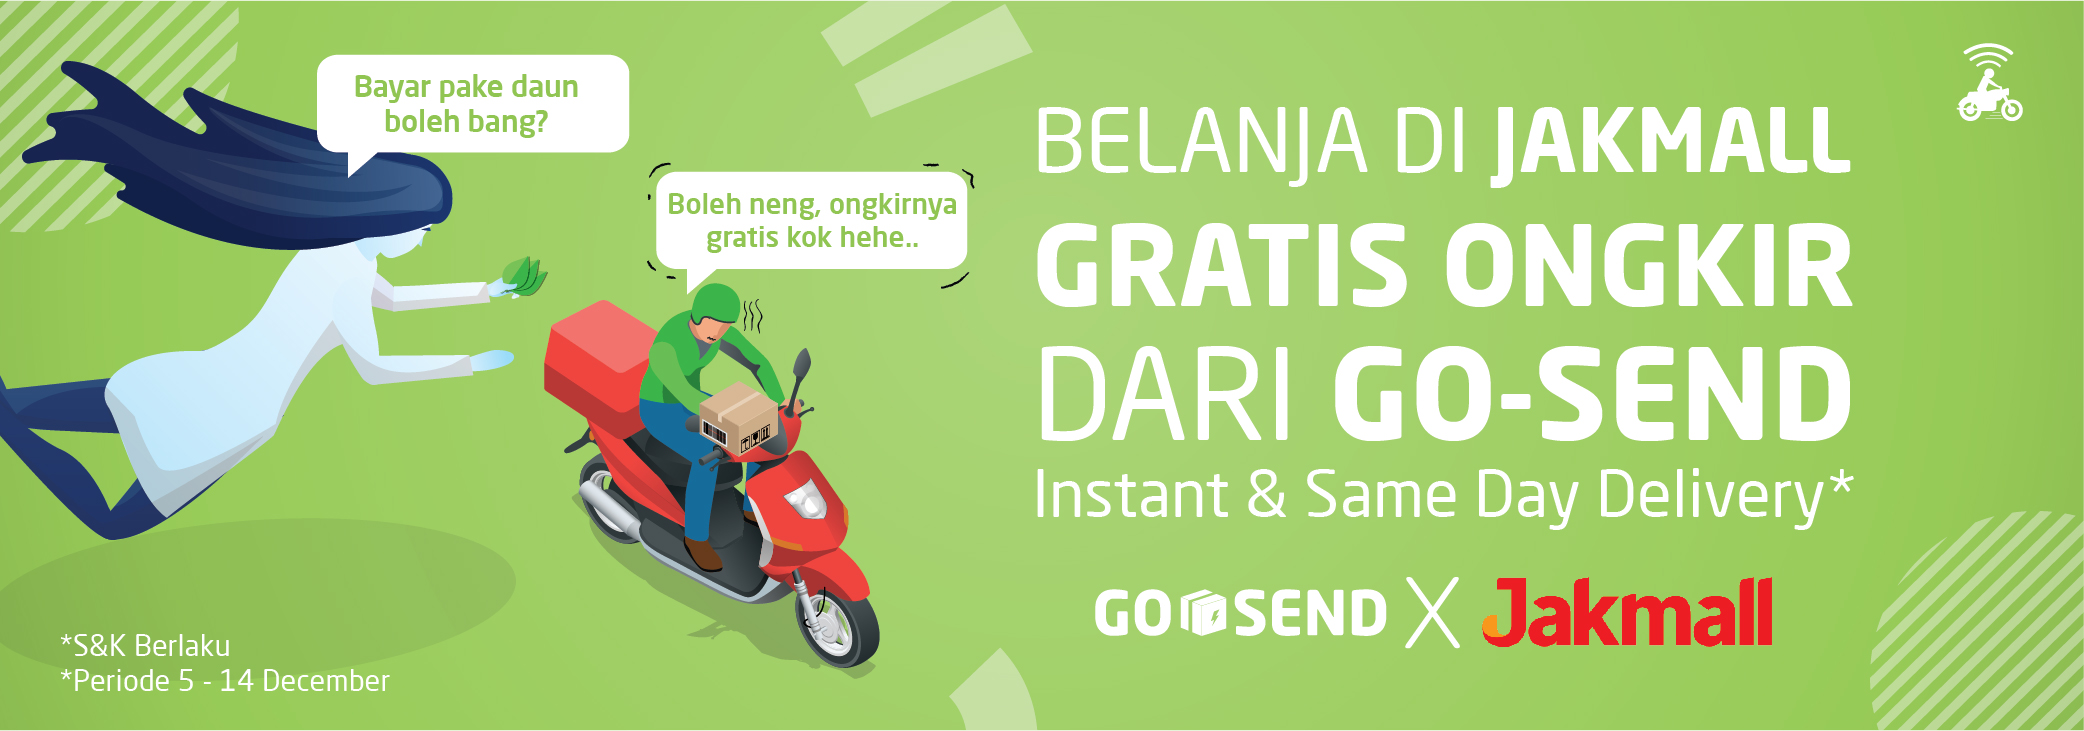 Promo GO-SEND di Jakmall, Gratis Ongkir Same Day Delivery & Instant Delivery